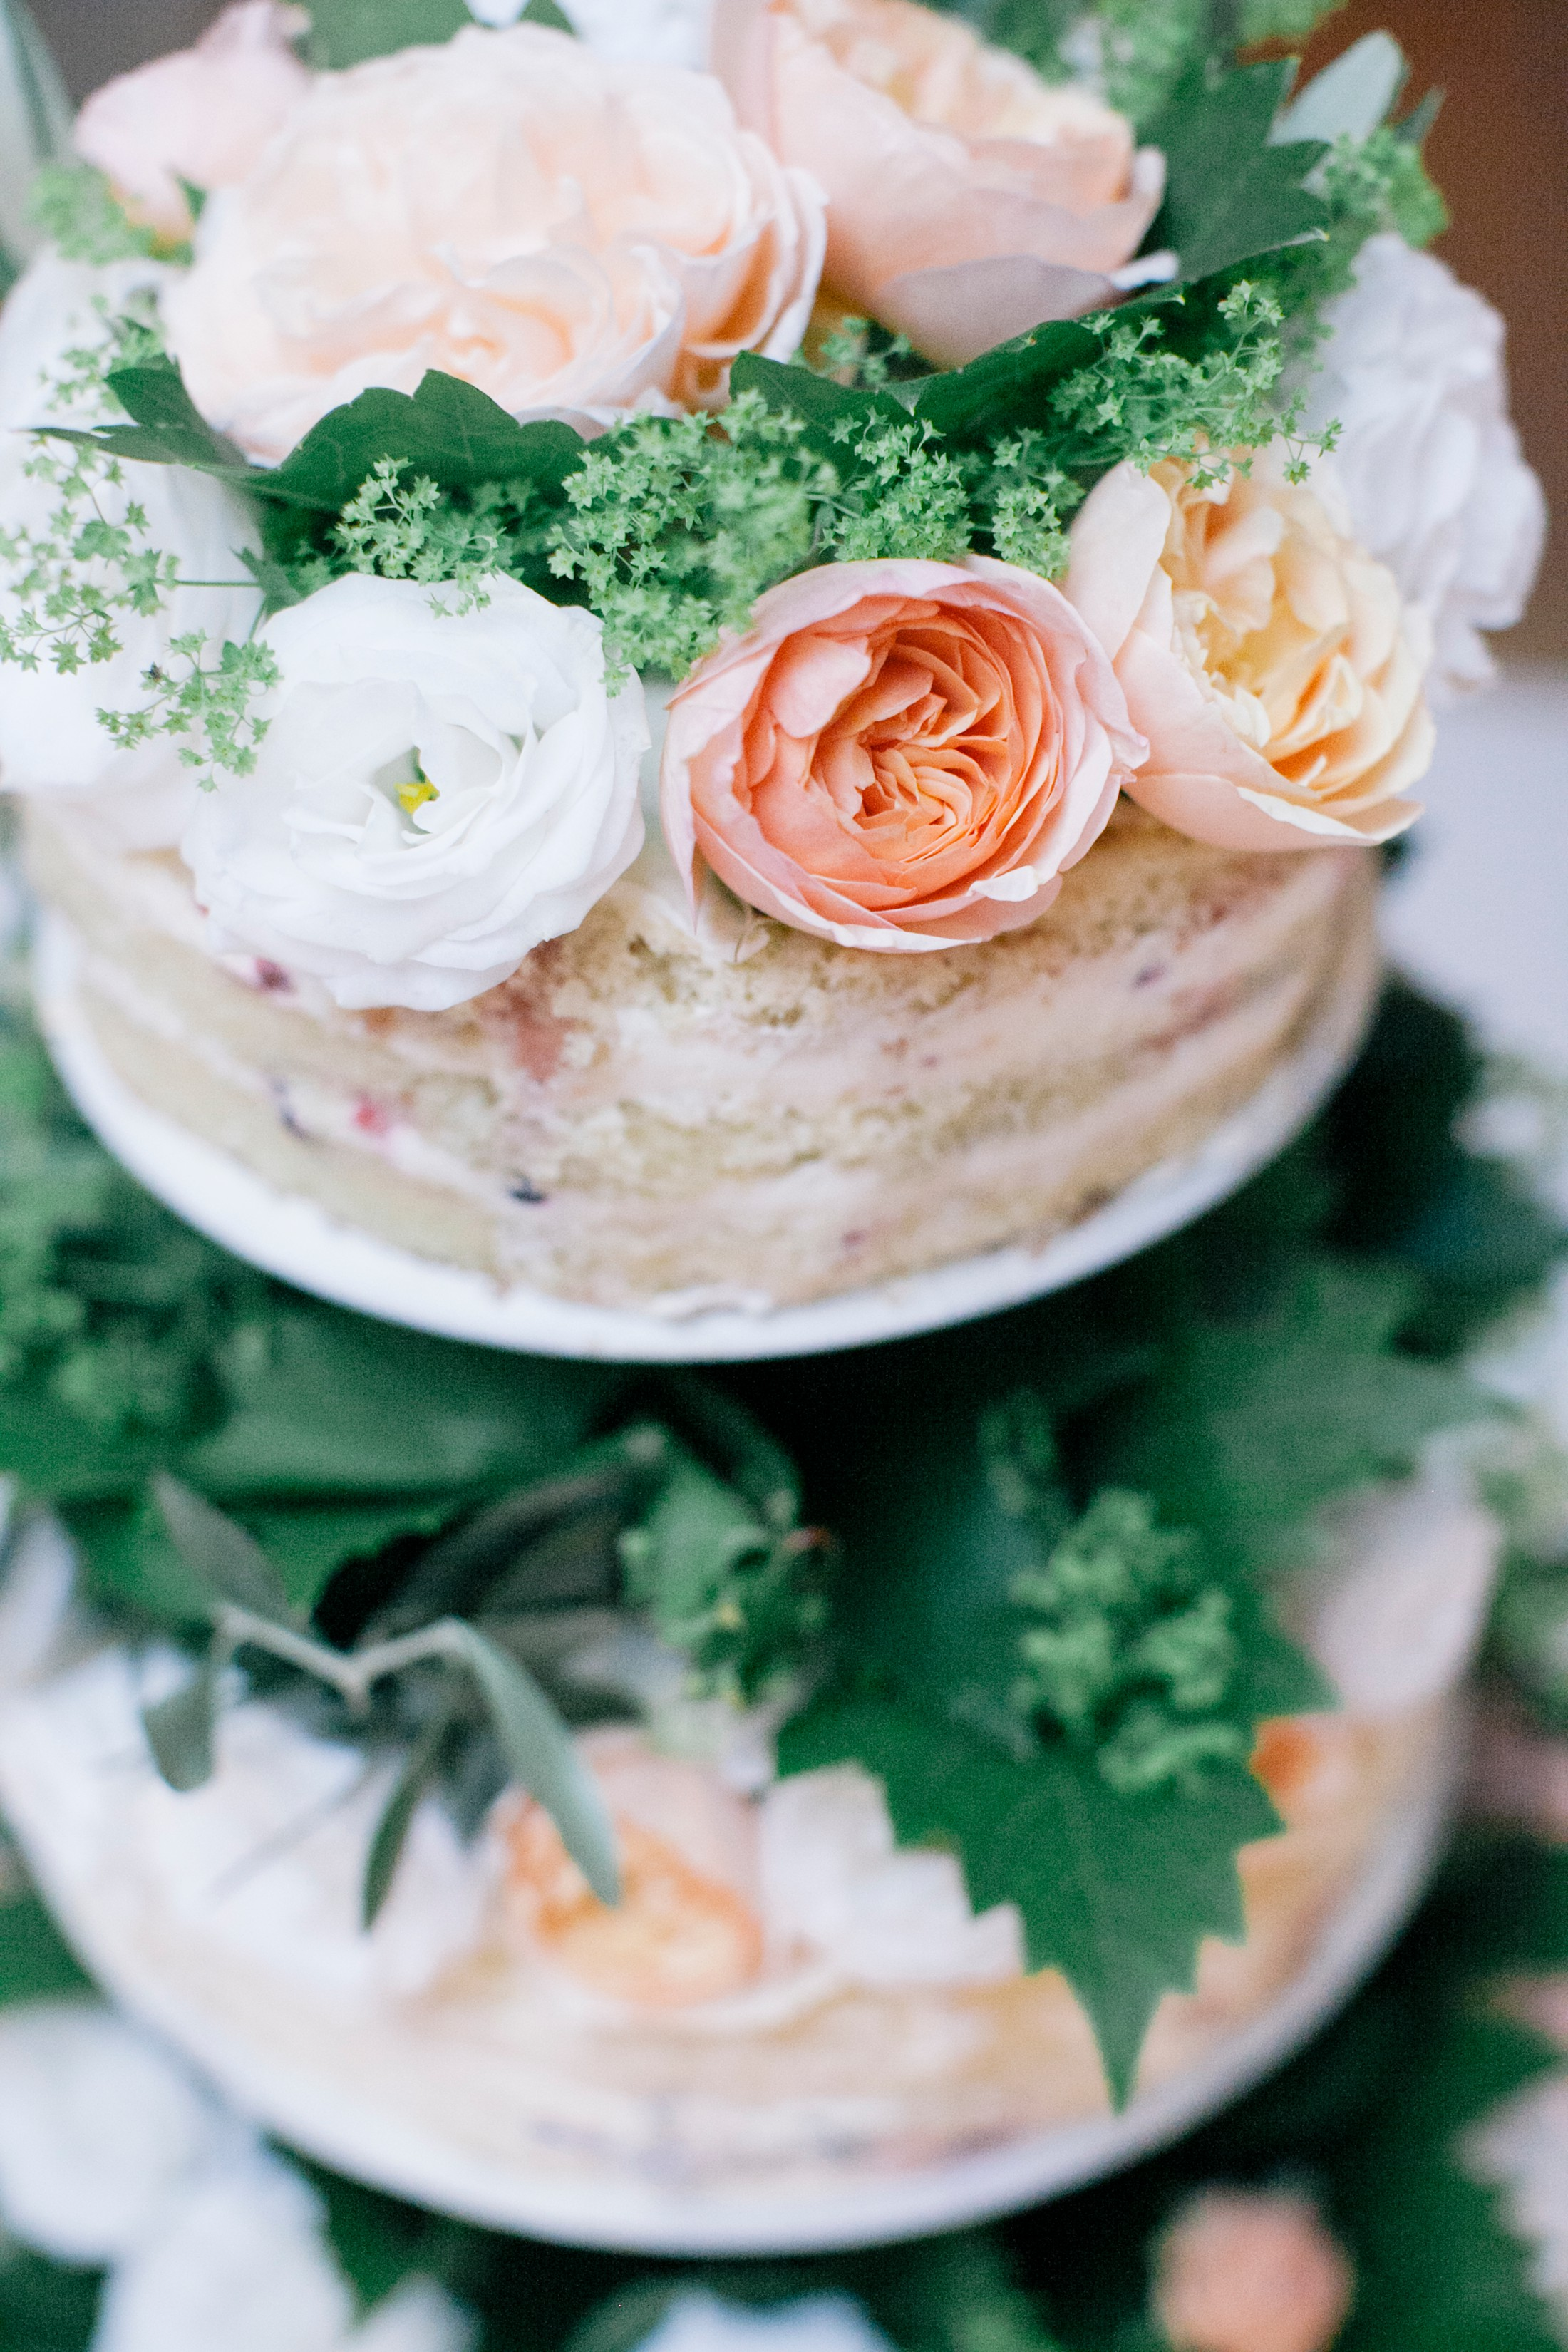 wedding cake with green leaves, orange and white flowers